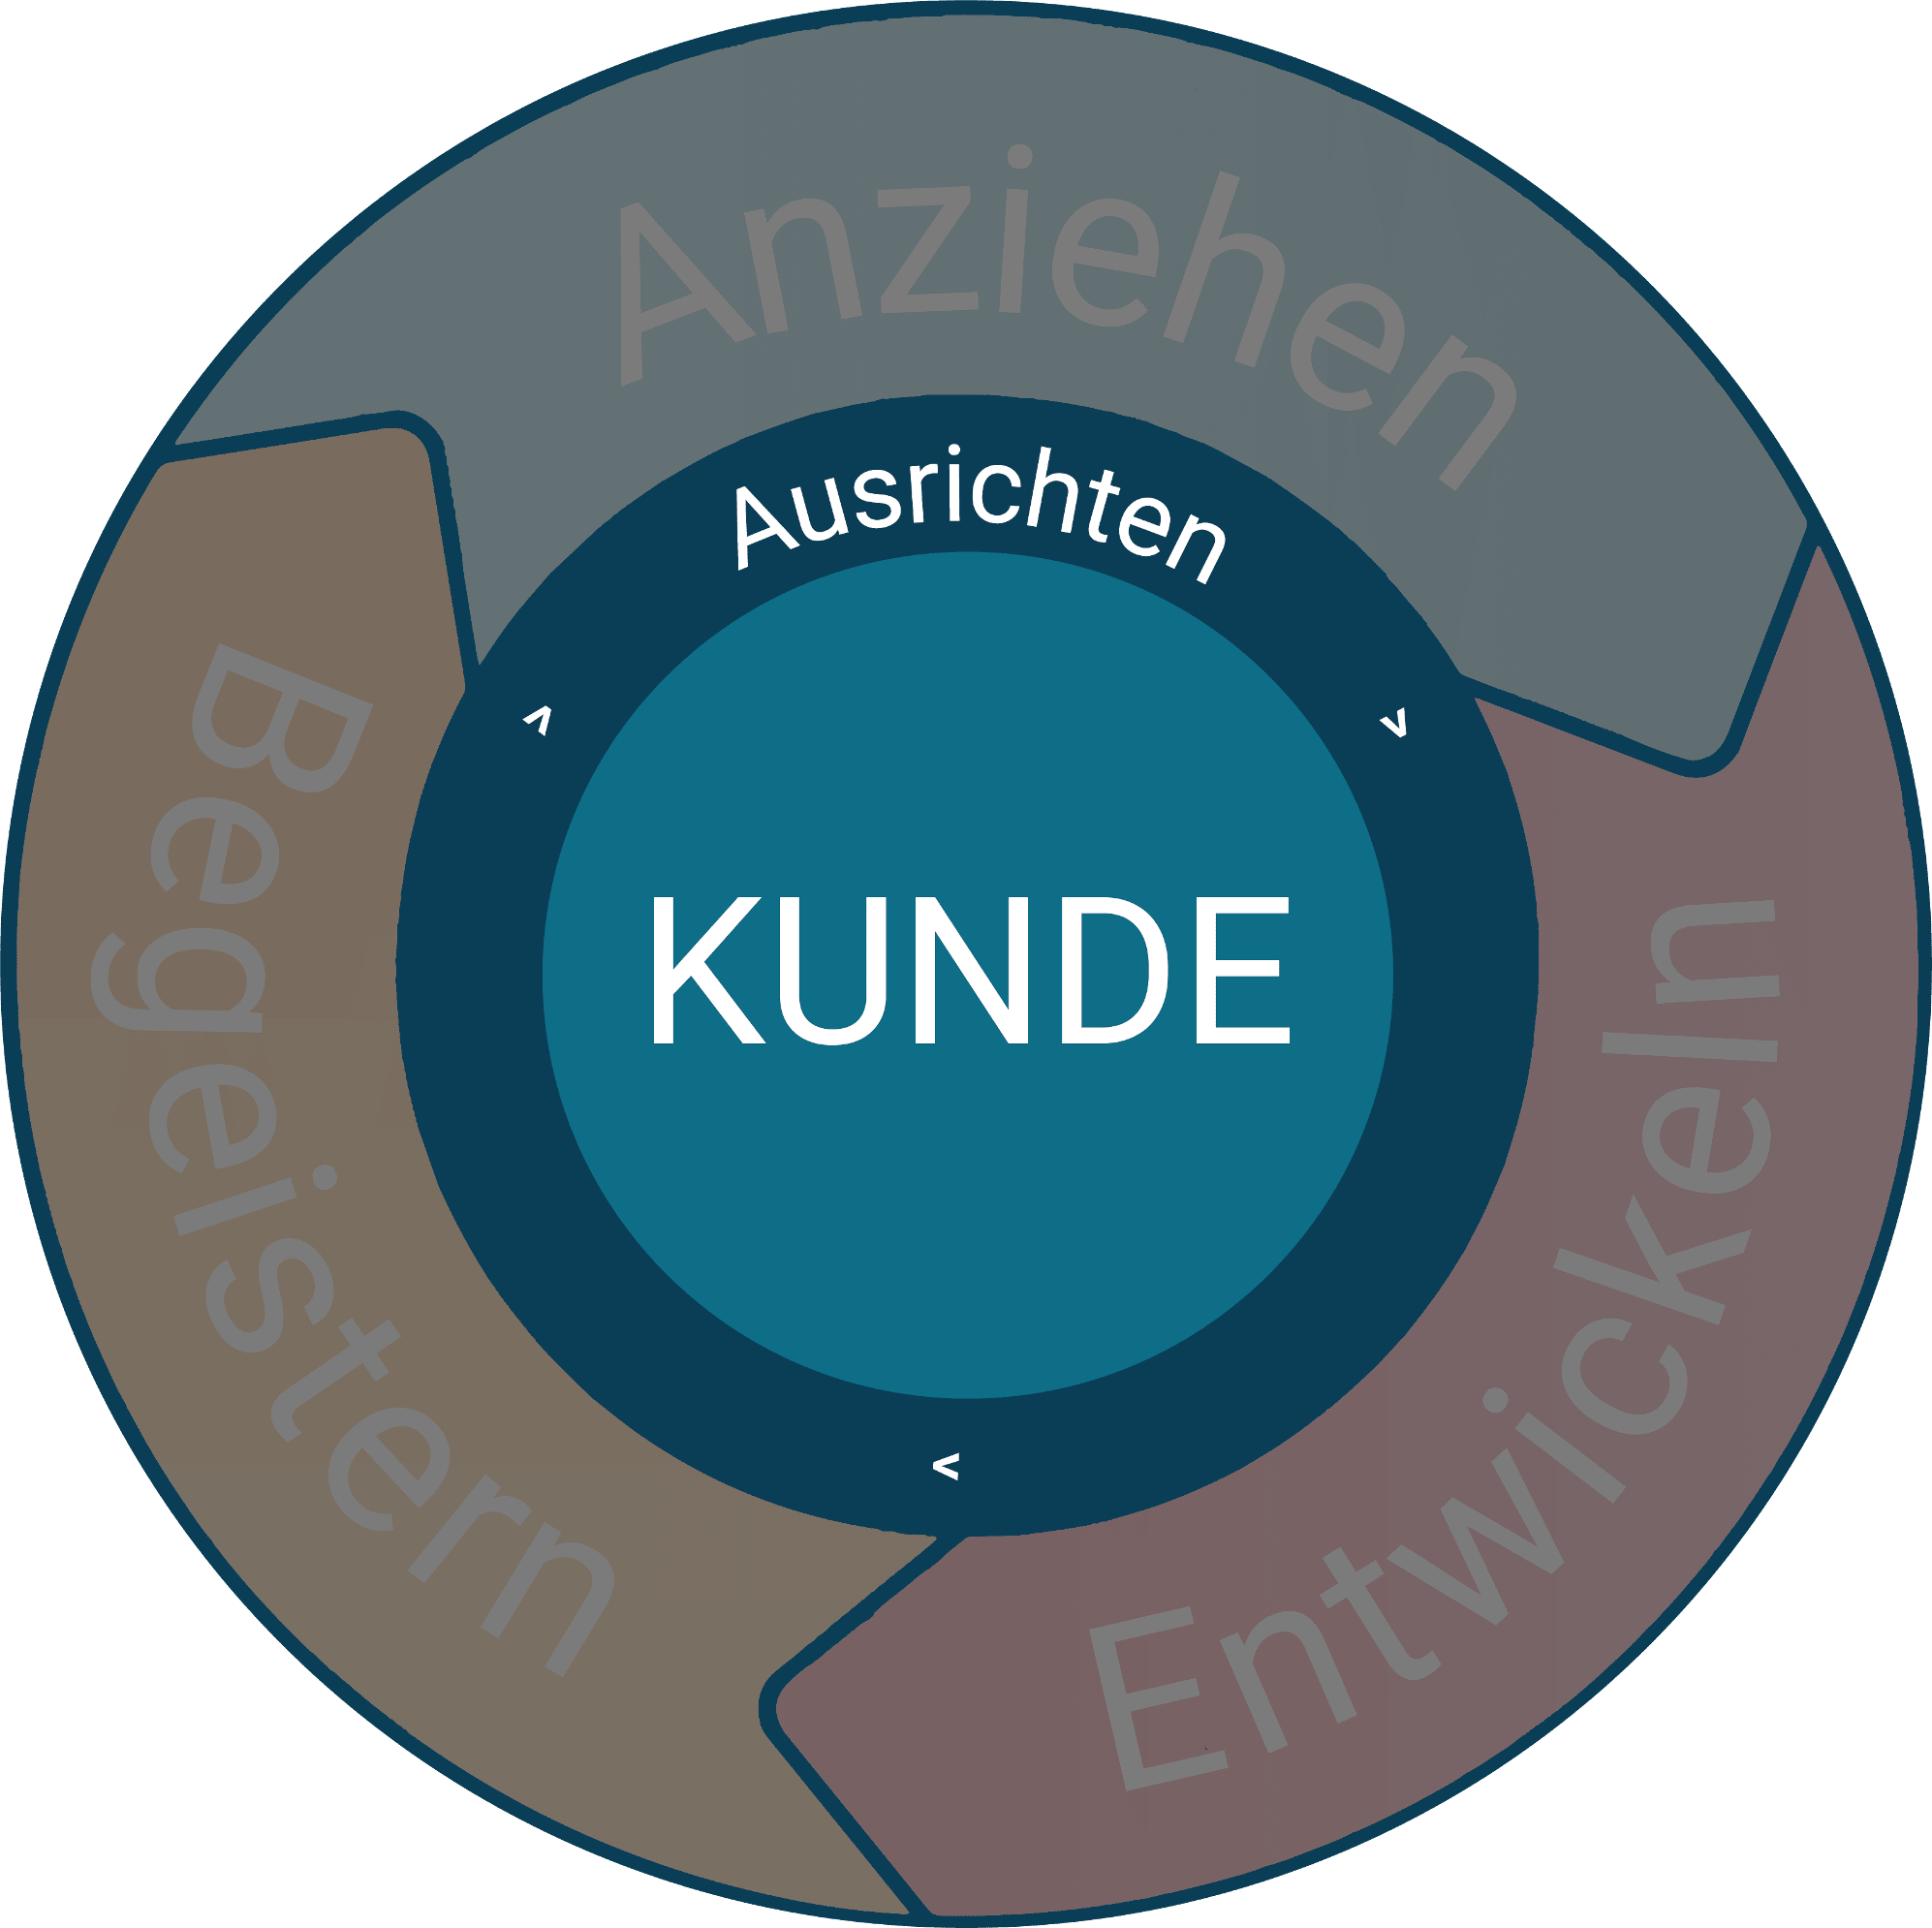 Inbound Marketing Phase 1: Ausrichten